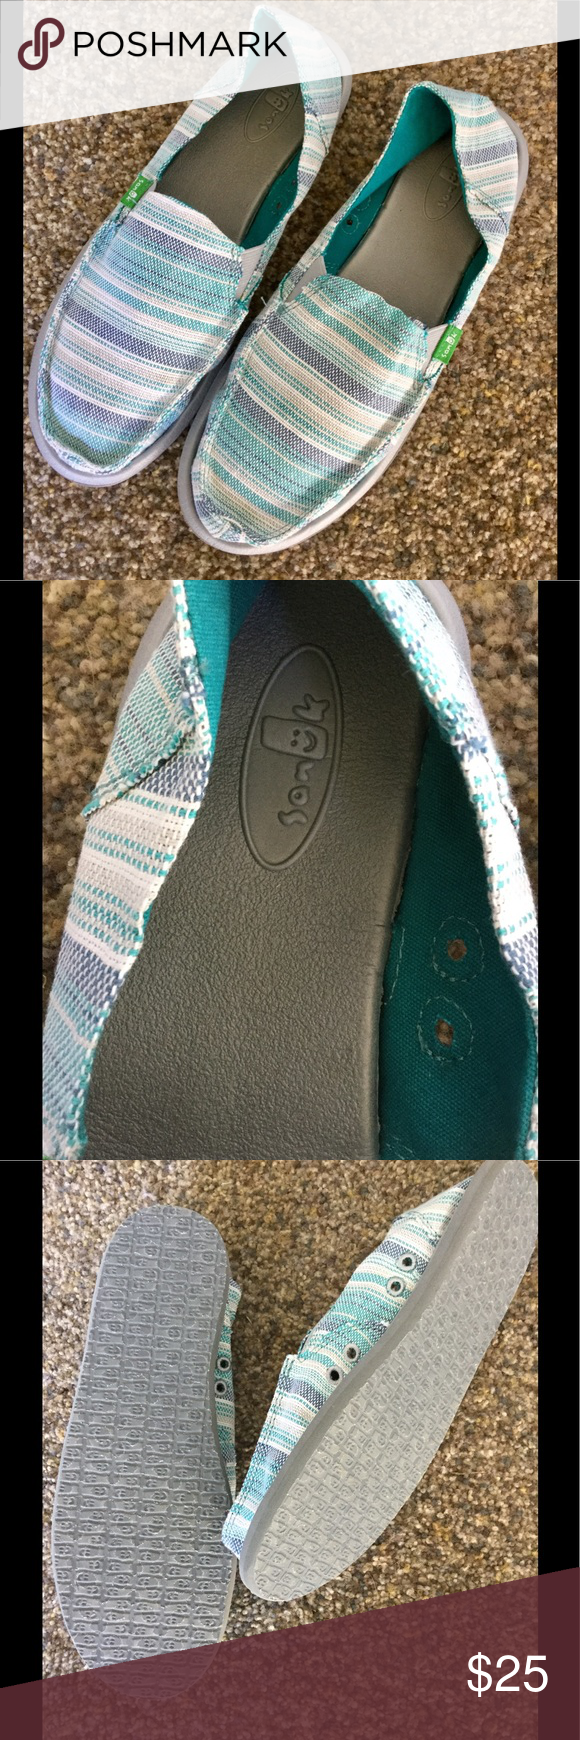 Sanuk loafers Nwot purple,teal, and white loafers Sanuk Shoes Flats & Loafers